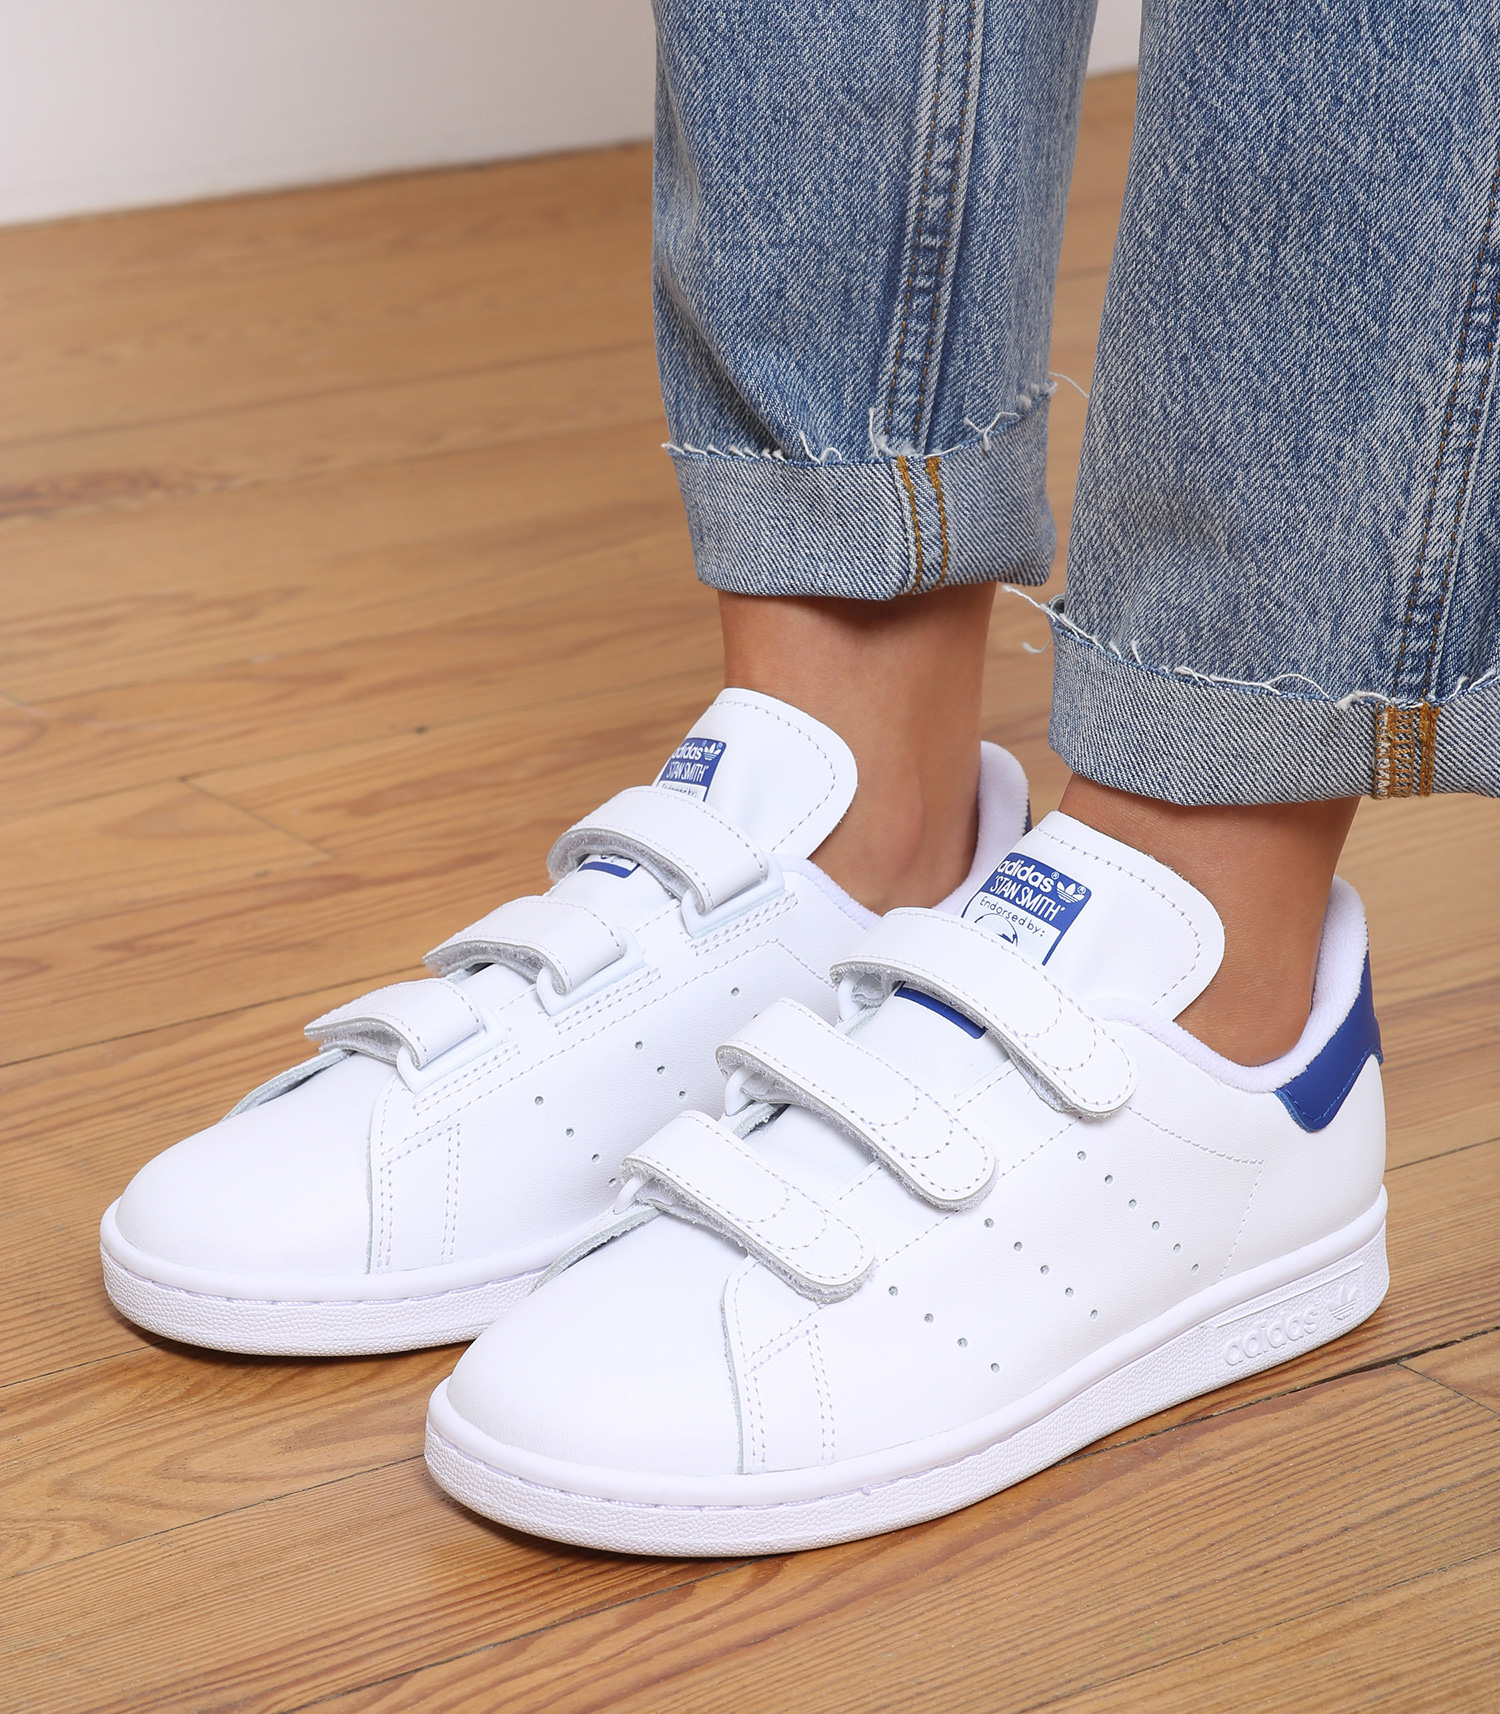 stan smith scratch homme bleu Off 58% - www.bashhguidelines.org